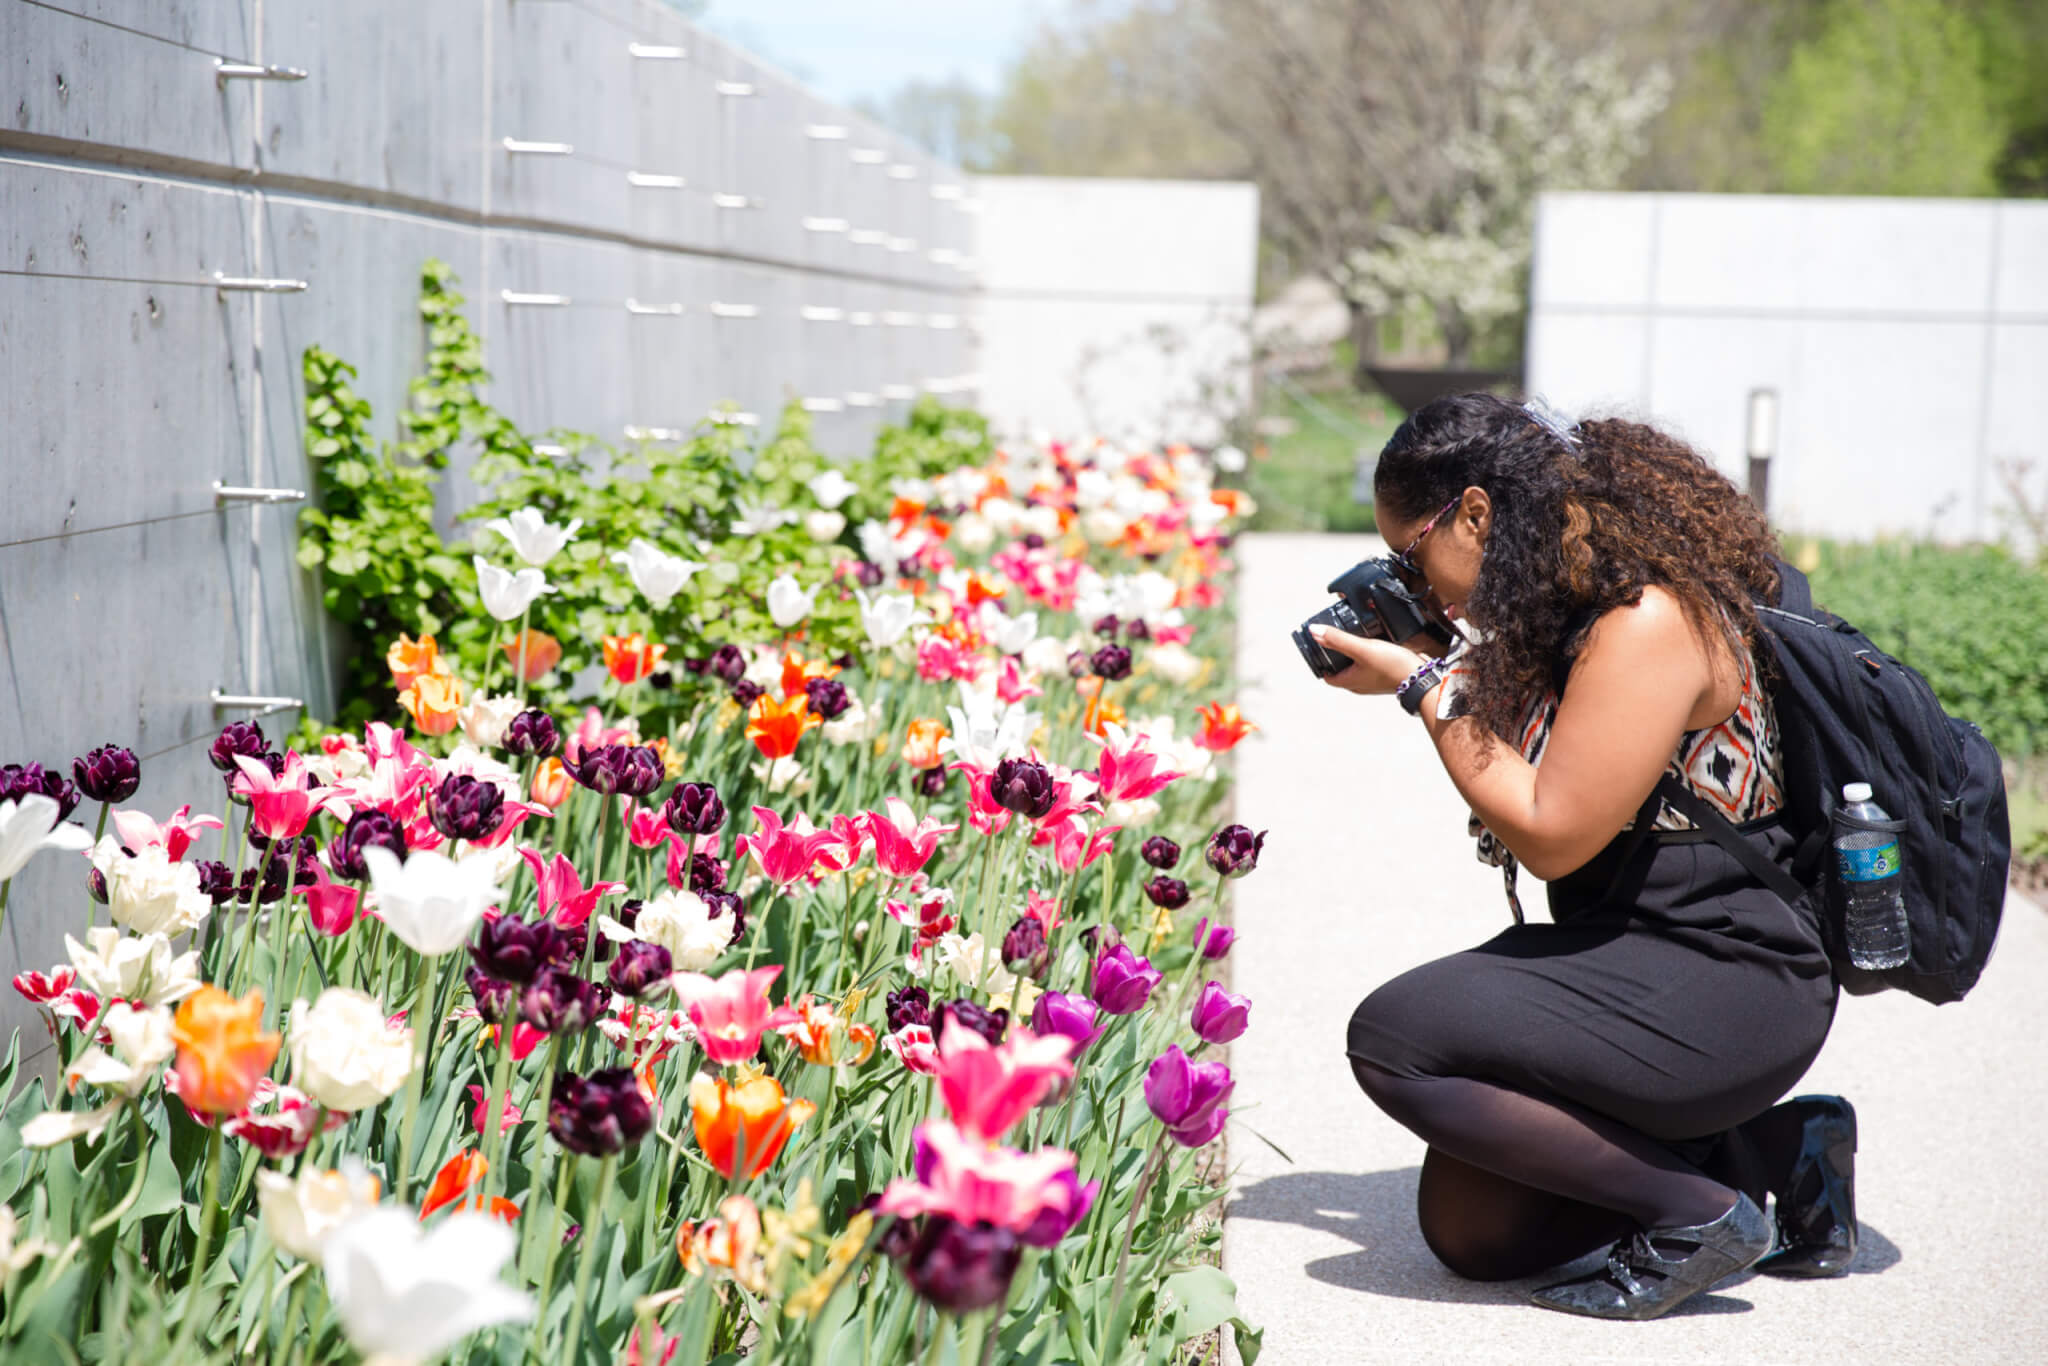 Person stooped low to the ground while taking a photo of tulips.